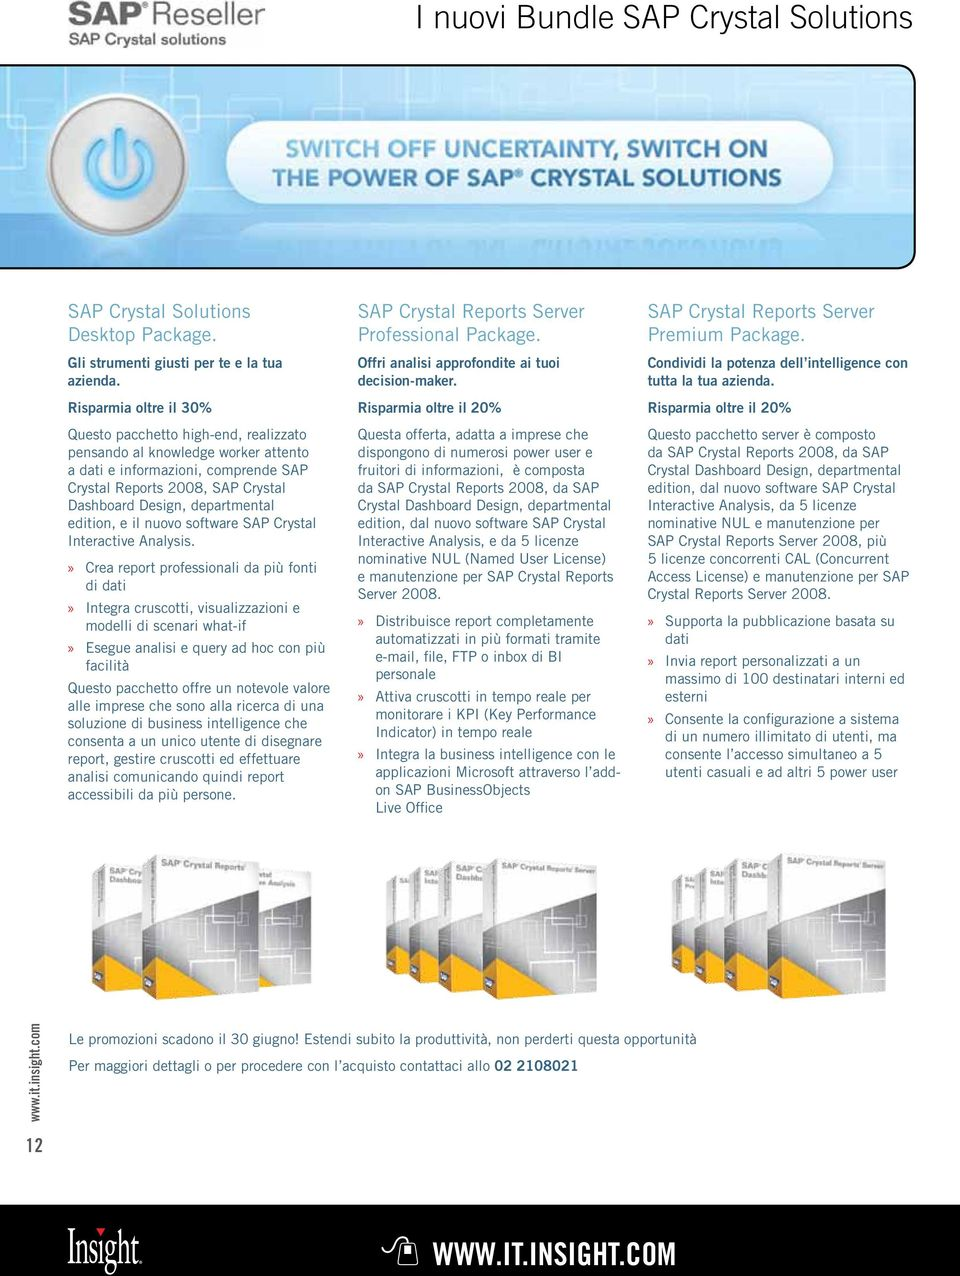 edition, e il nuovo software SAP Crystal Interactive Analysis.